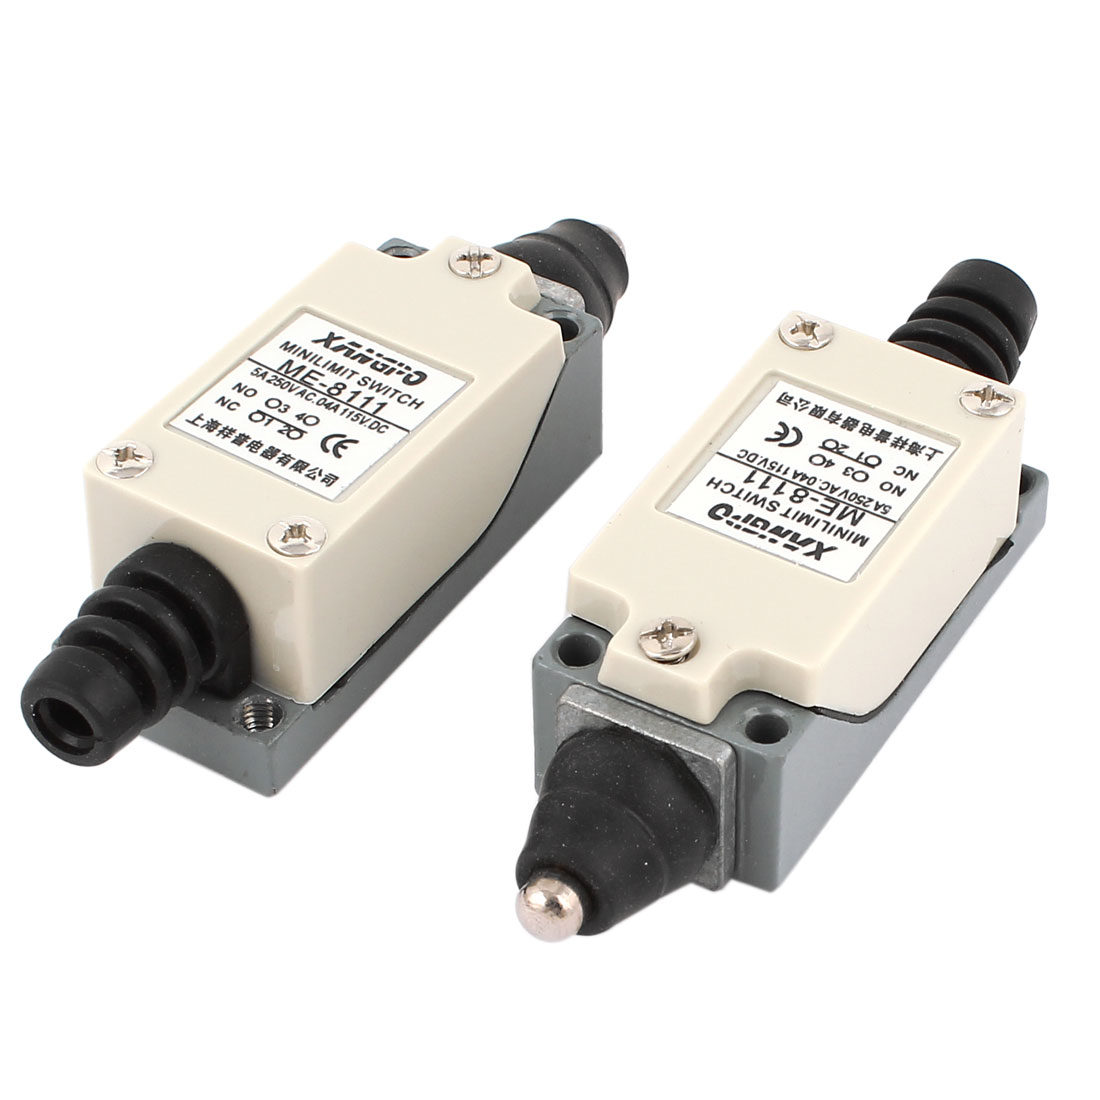 DC 115V 0.4A AC 250V 5A NO NC SPDT Momentary Push Plunger Limit Switch 2 Pieces